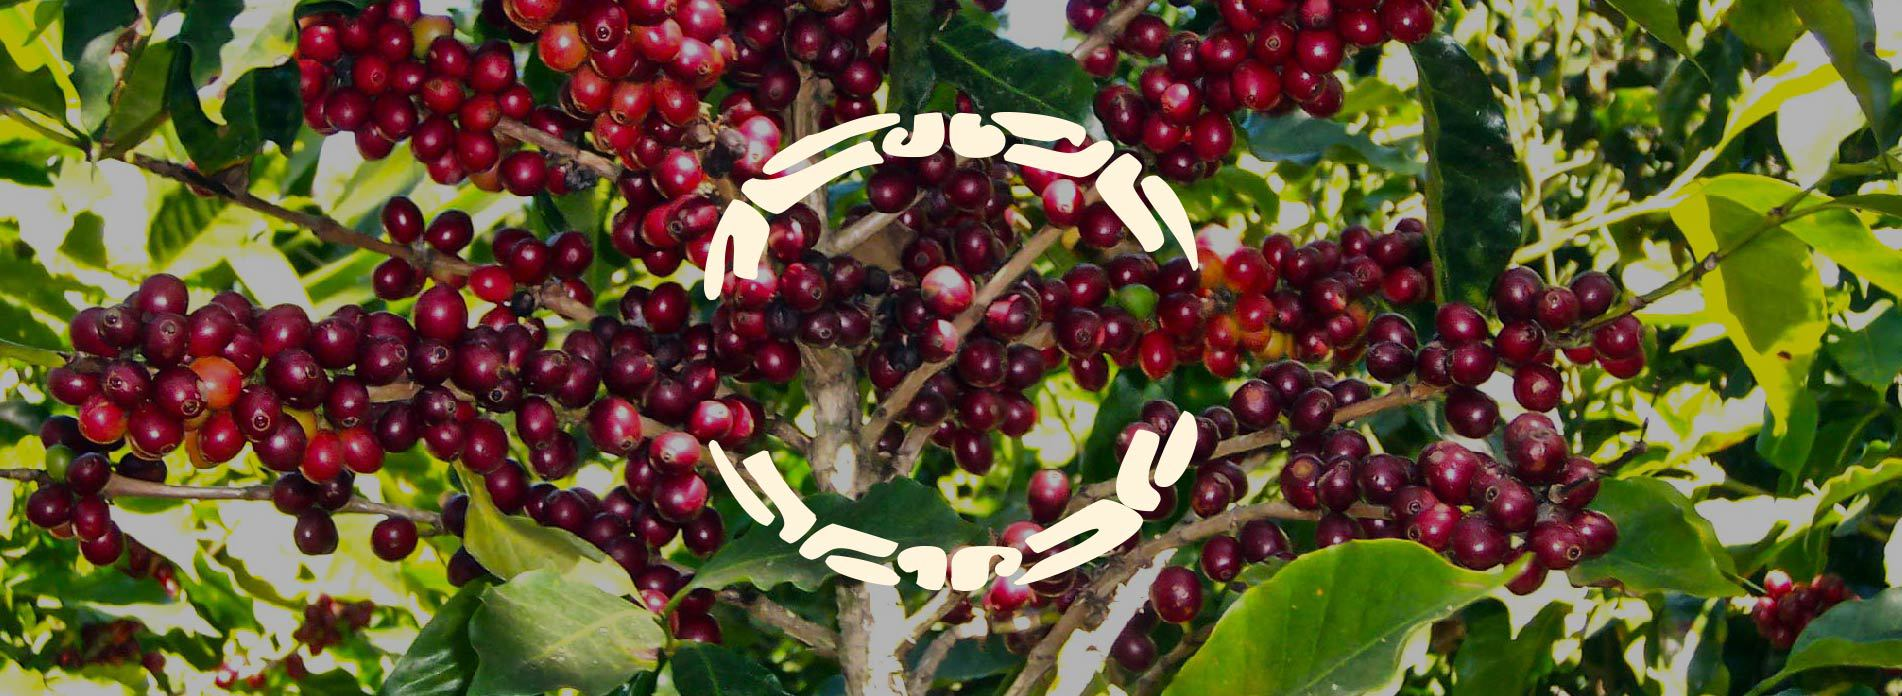 coffee tree full of fruits